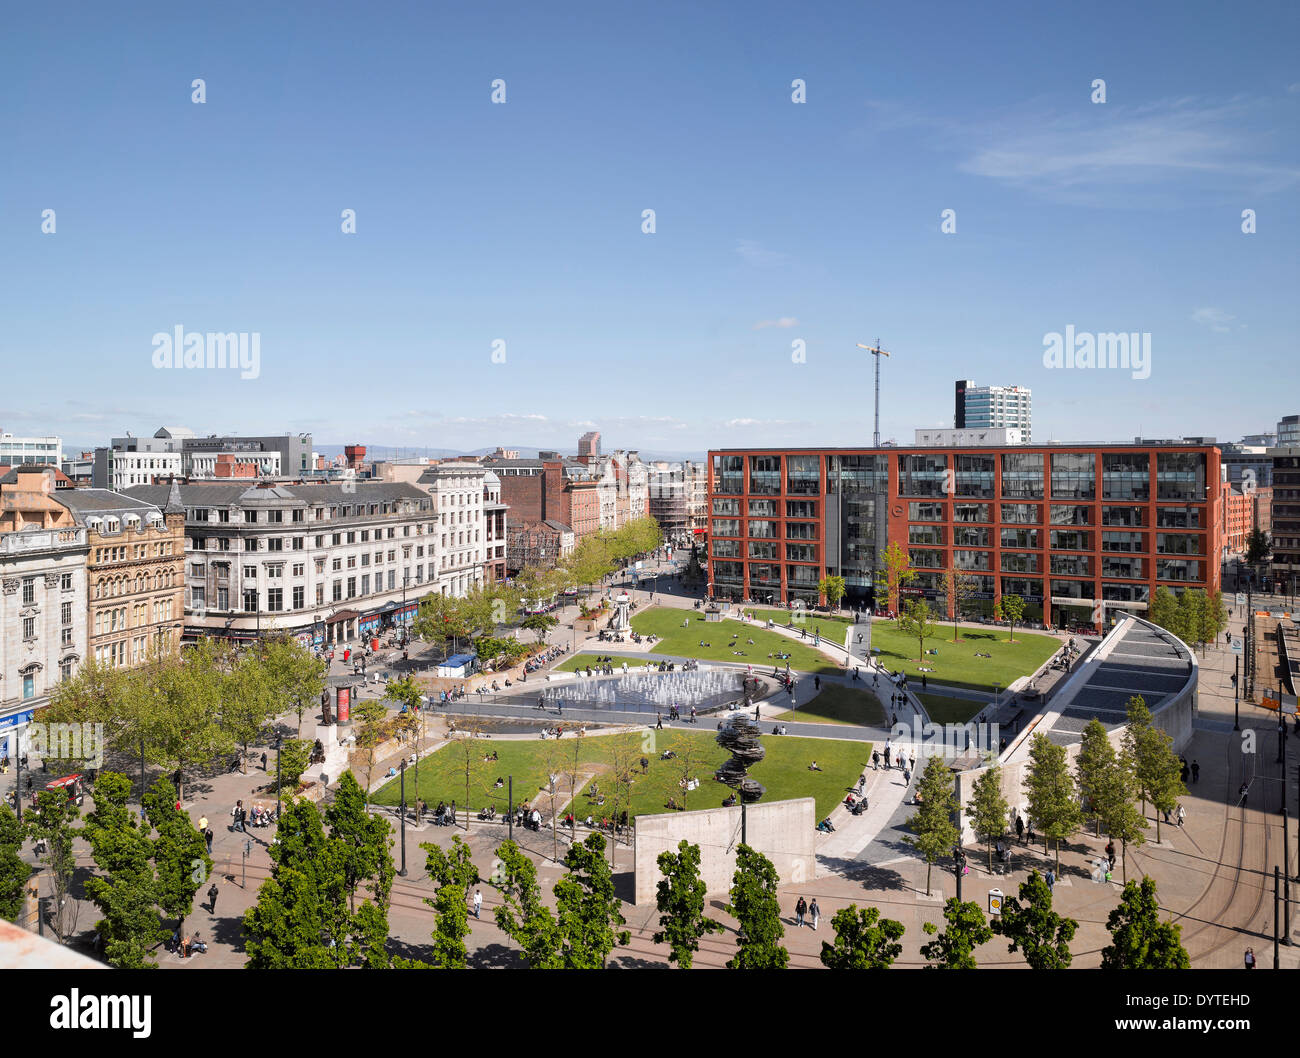 Urban piazza at Piccadilly Place, Manchester, Greater Manchester. - Stock Image